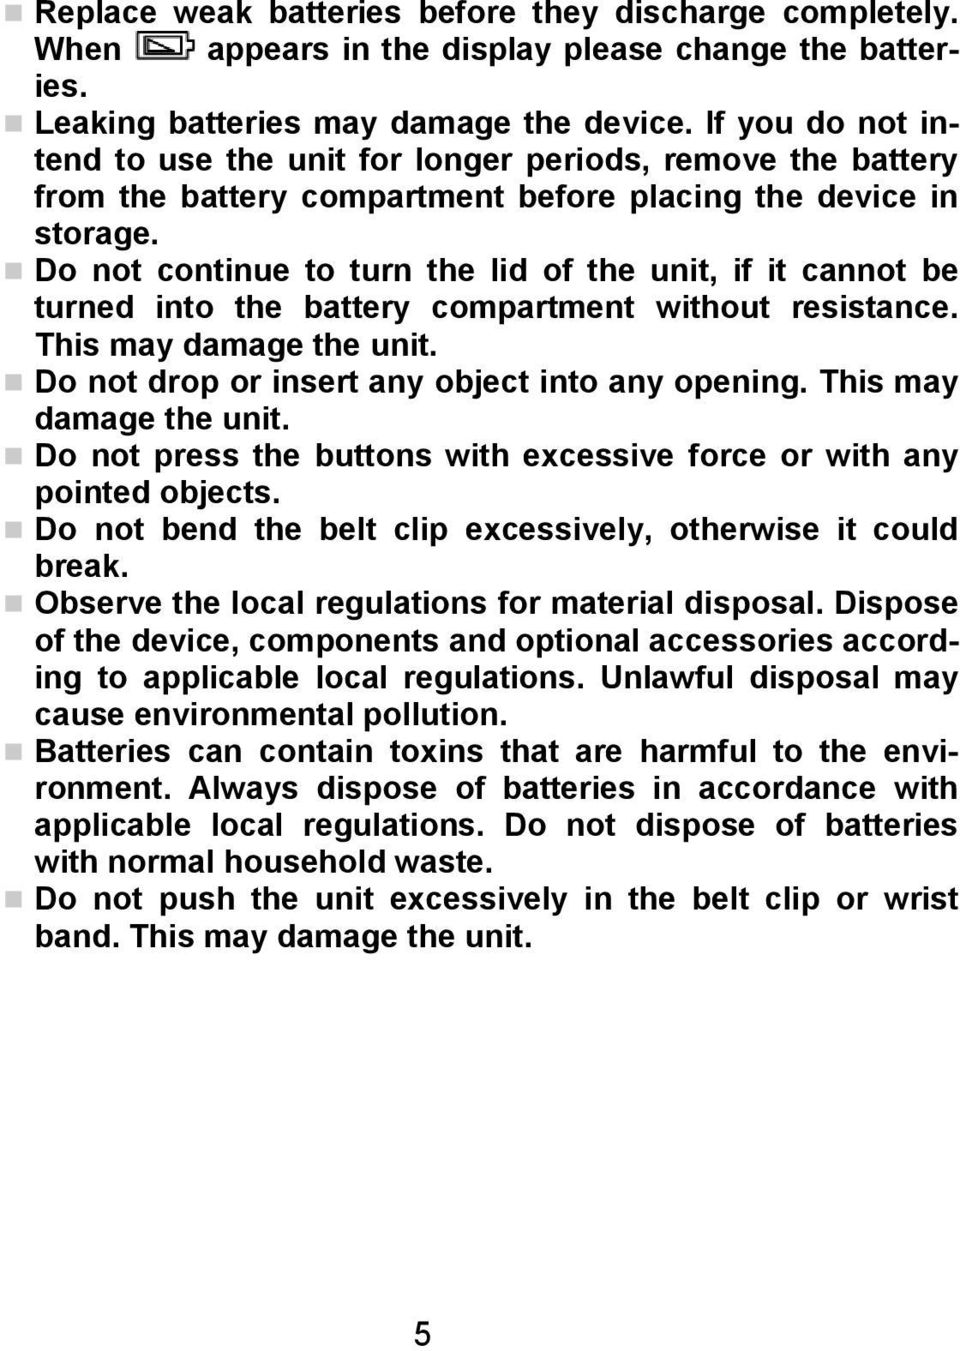 Do not continue to turn the lid of the unit, if it cannot be turned into the battery compartment without resistance. This may damage the unit. Do not drop or insert any object into any opening.